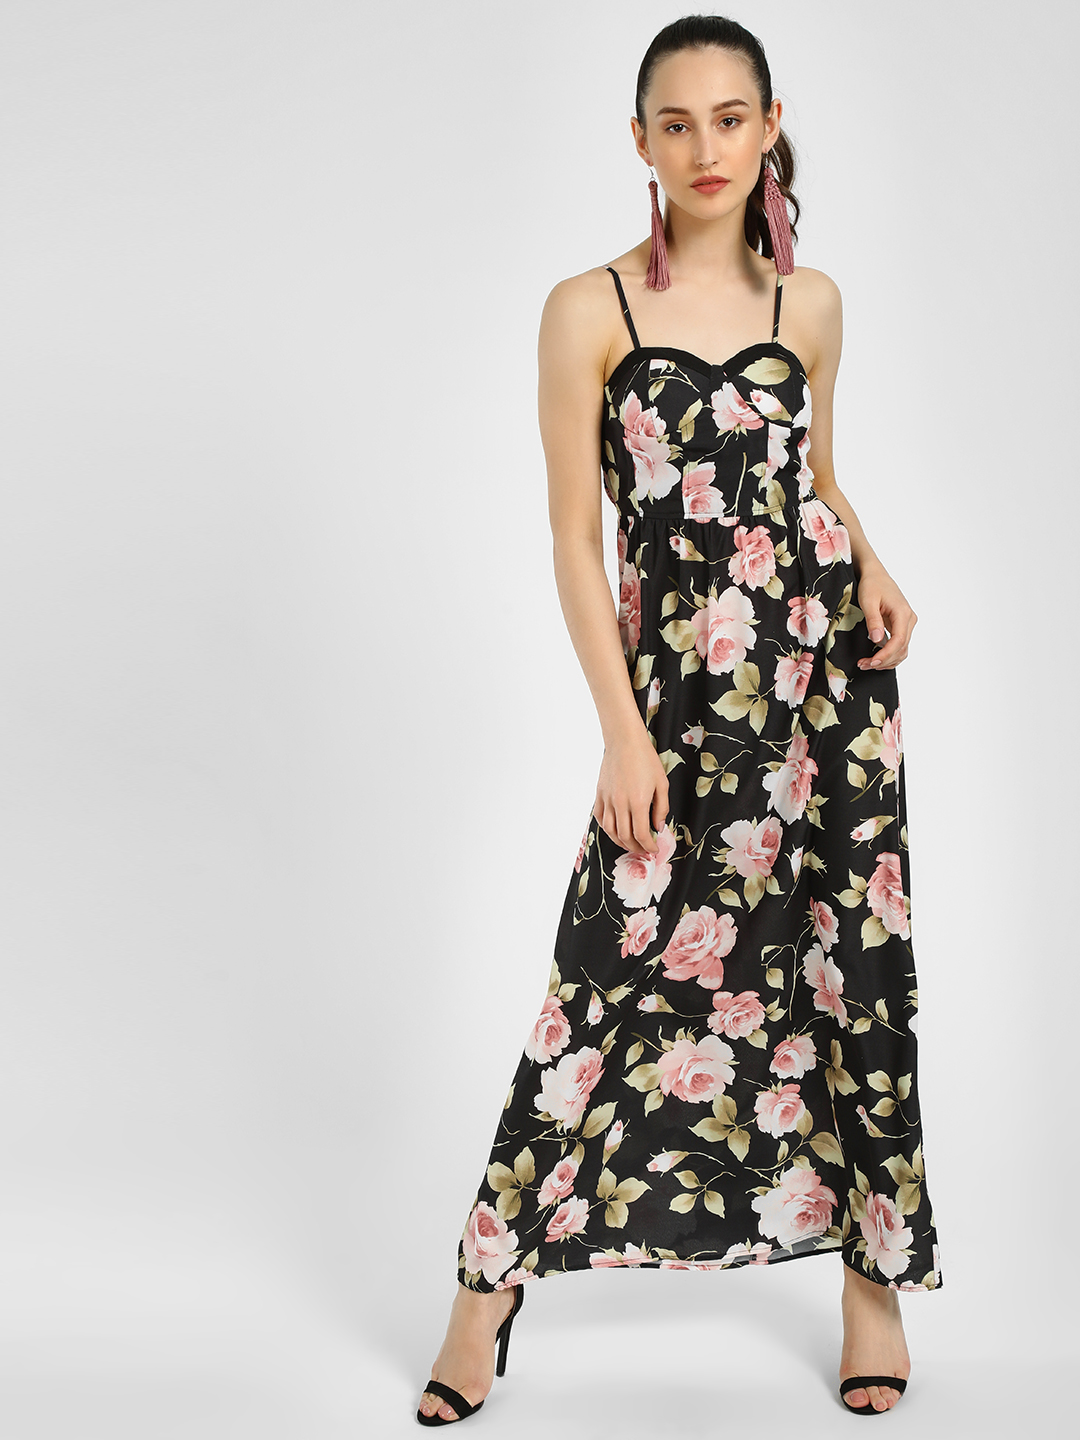 MIWAY Print Floral Print Sleeveless Maxi Dress 1